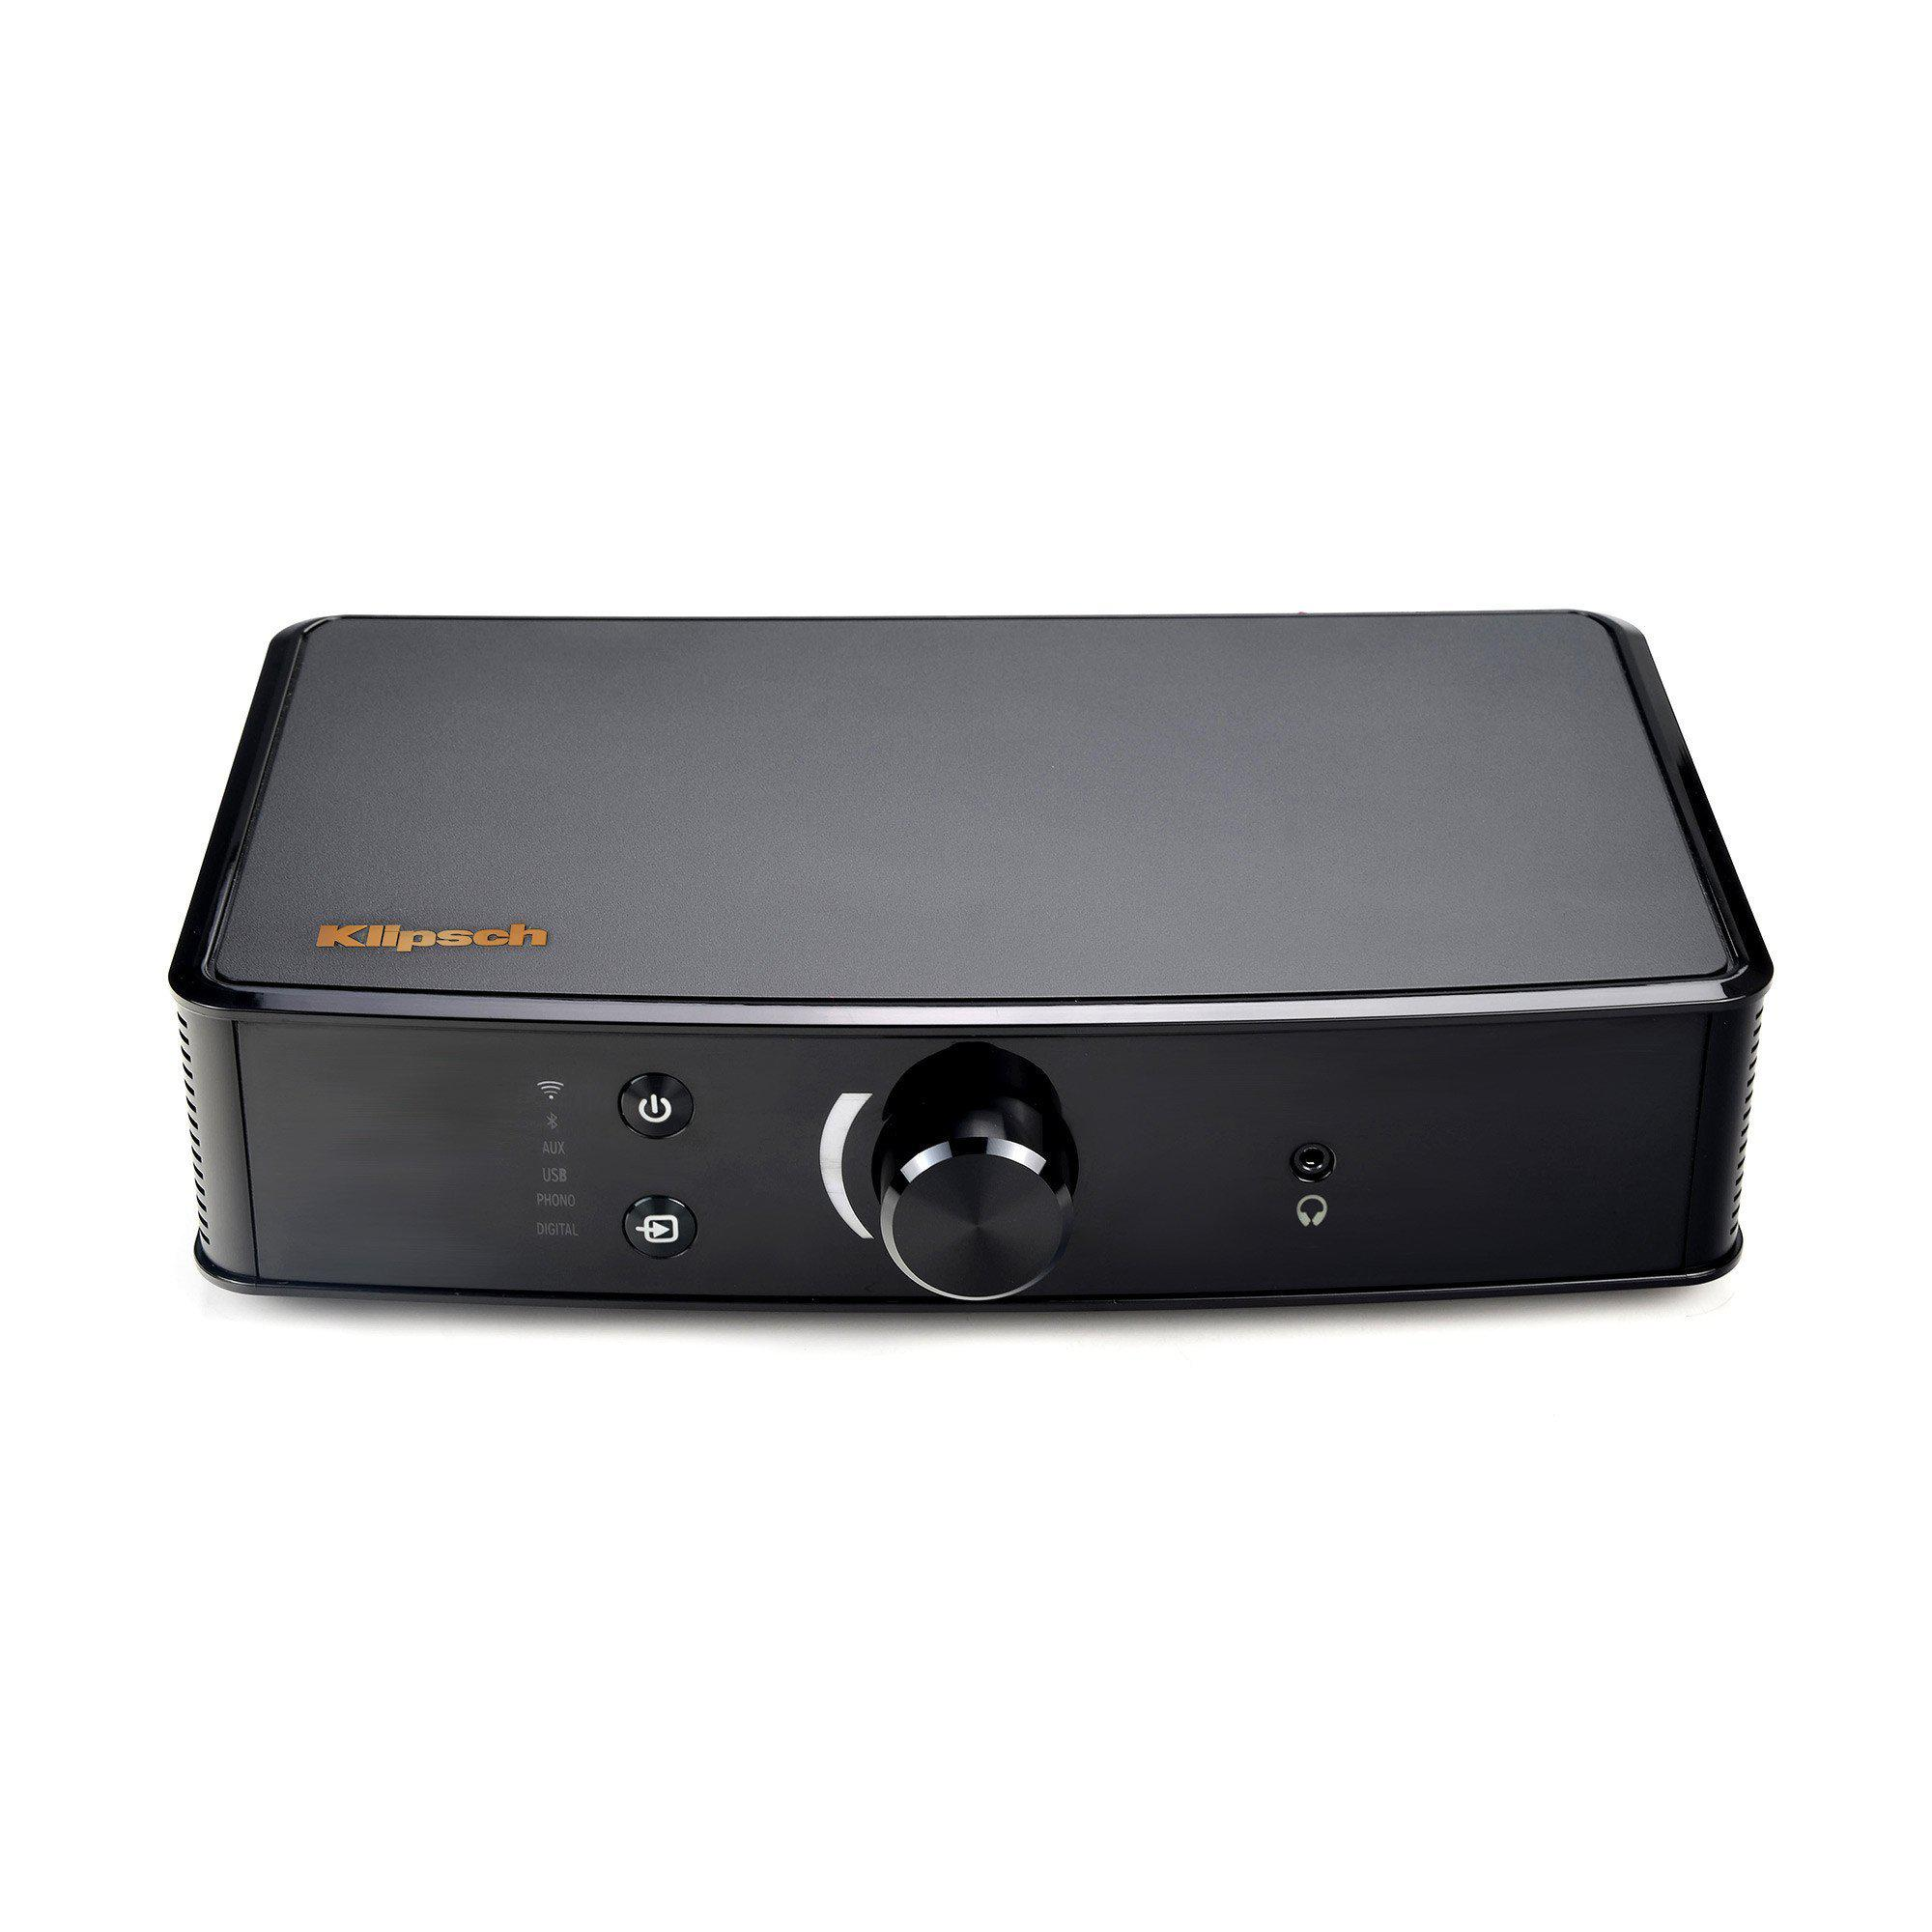 Kipsch PowerGate Wireless Stereo Amplifier - Vinyl Revival - Fitzroy - 2